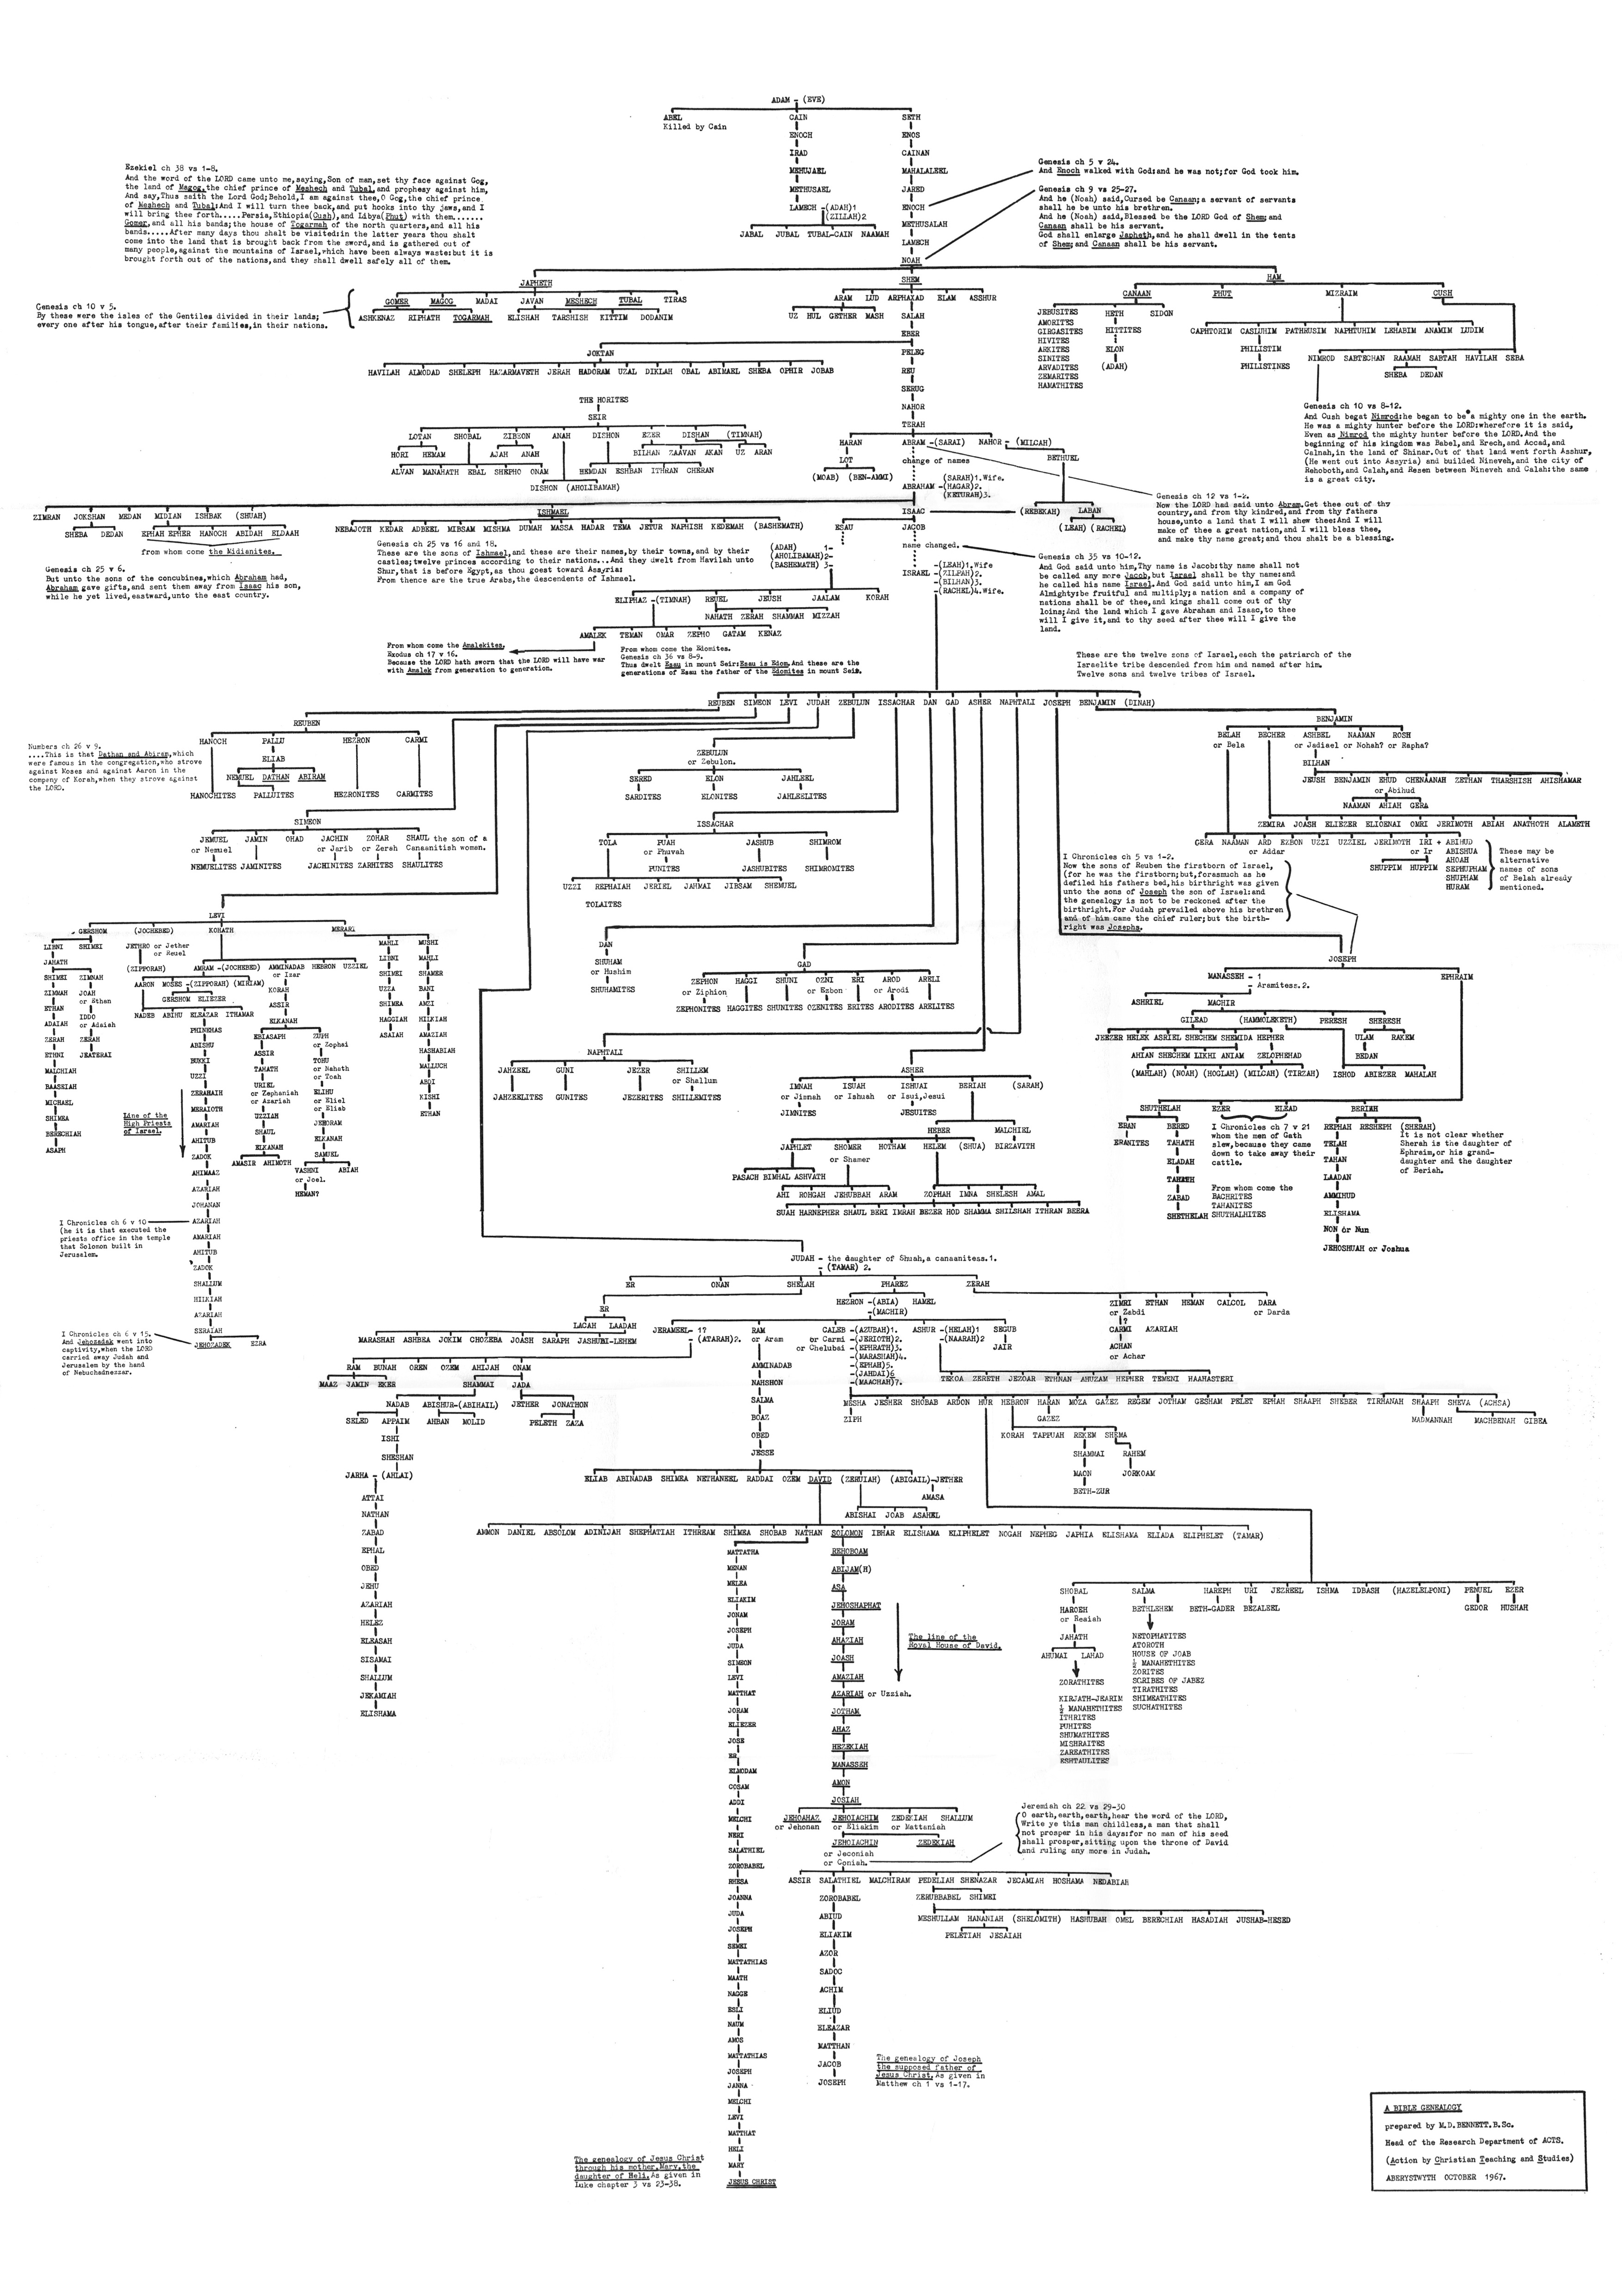 This chart compiled by Dr. Michael D. Bennett was originally printed in 1967. The correct way to cite this article is either: Bennett MD., 1967. Bible Genealogy Chart. or: http://www.actscambridge.org/assets/images/ bible_genealogy_a1_chart.pdf This chart is copyright © Dr Michael D Bennett, actscambridge.org You may download this chart for your own personal non-commercial use. You may not reproduce this chart in full or in part for personal or non-commercial use. All rights reserved. No part of this publication may be reproduced, stored in any retrieval system, or transmitted in any form or by any means, electronic, mechanical, photocopying, recording or otherwise, for commercial use, without the prior written permission of the author. To request this please contact: copyright@actscambridge.org BIBLE TRUTH – the official magazine of the BIBTF – has been published free and post free since January 1975. Now published quarterly, in hard copy and electronic format, you are welcome to download material from recent and current issues, or request a hard copy at www.bibtf.org